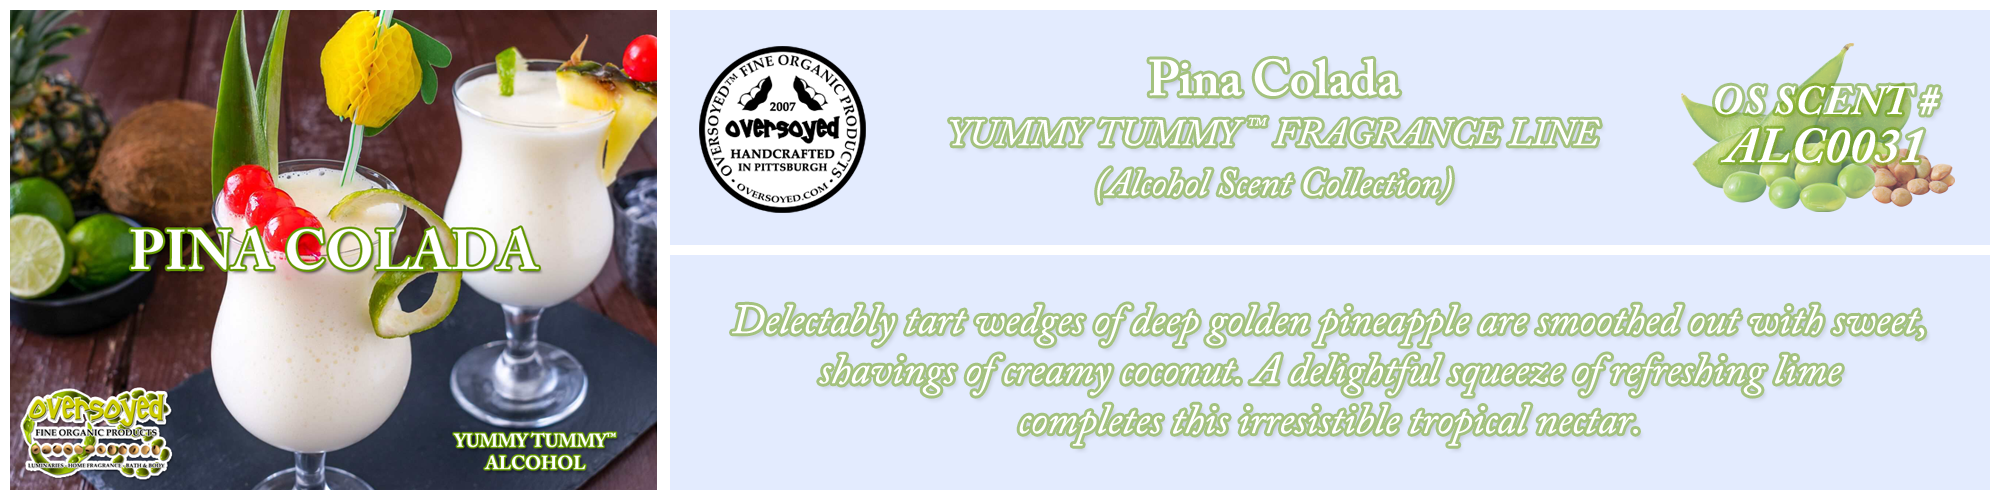 Pina Colada Handcrafted Products Collection